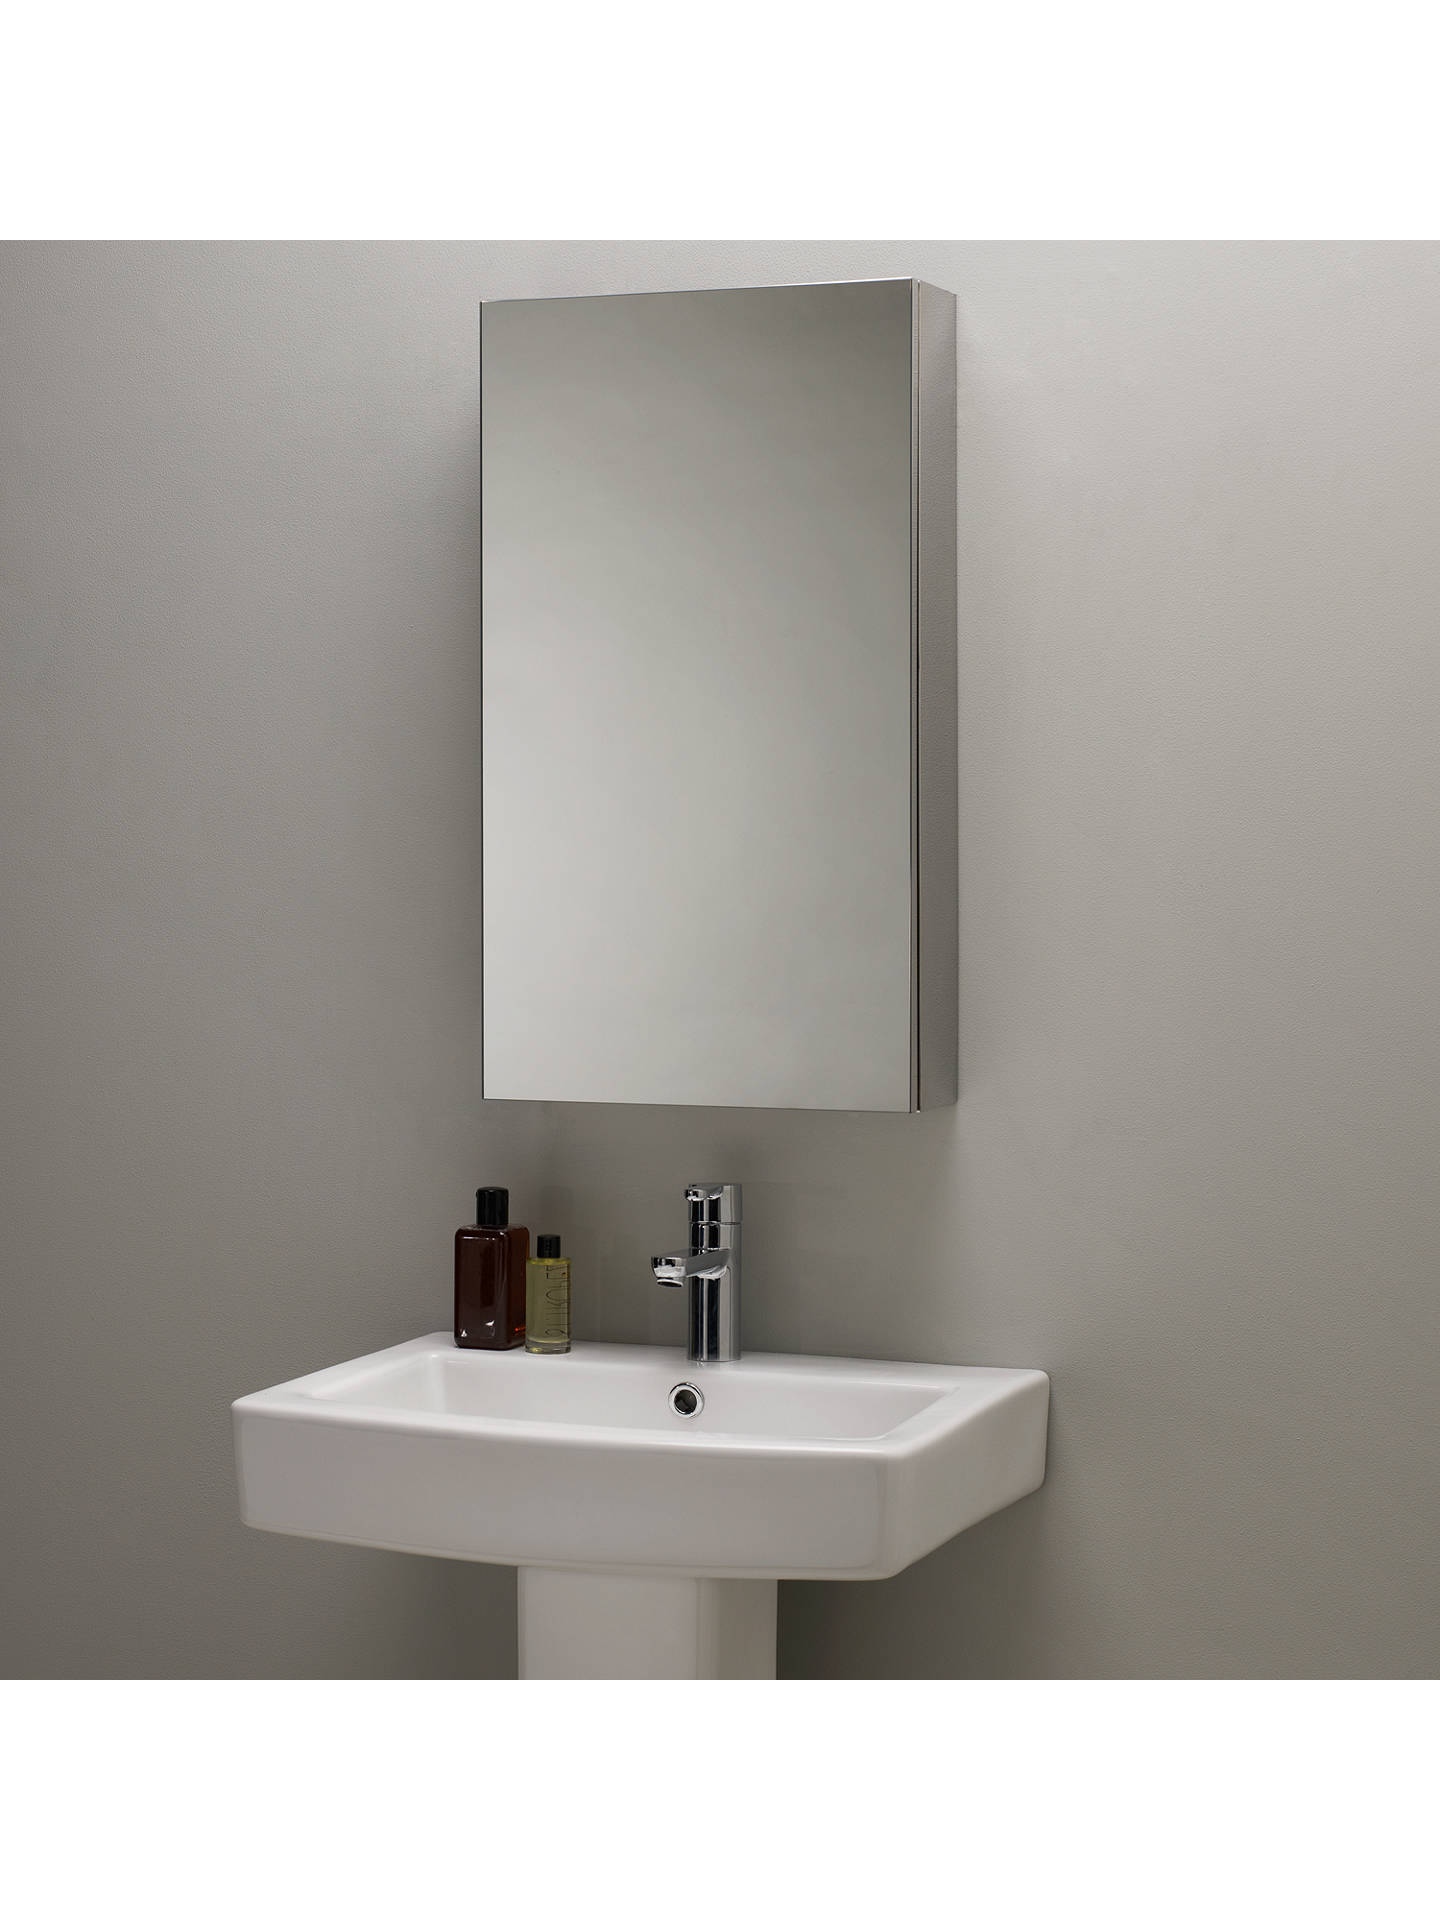 Single Mirrored Bathroom Cabinet Large